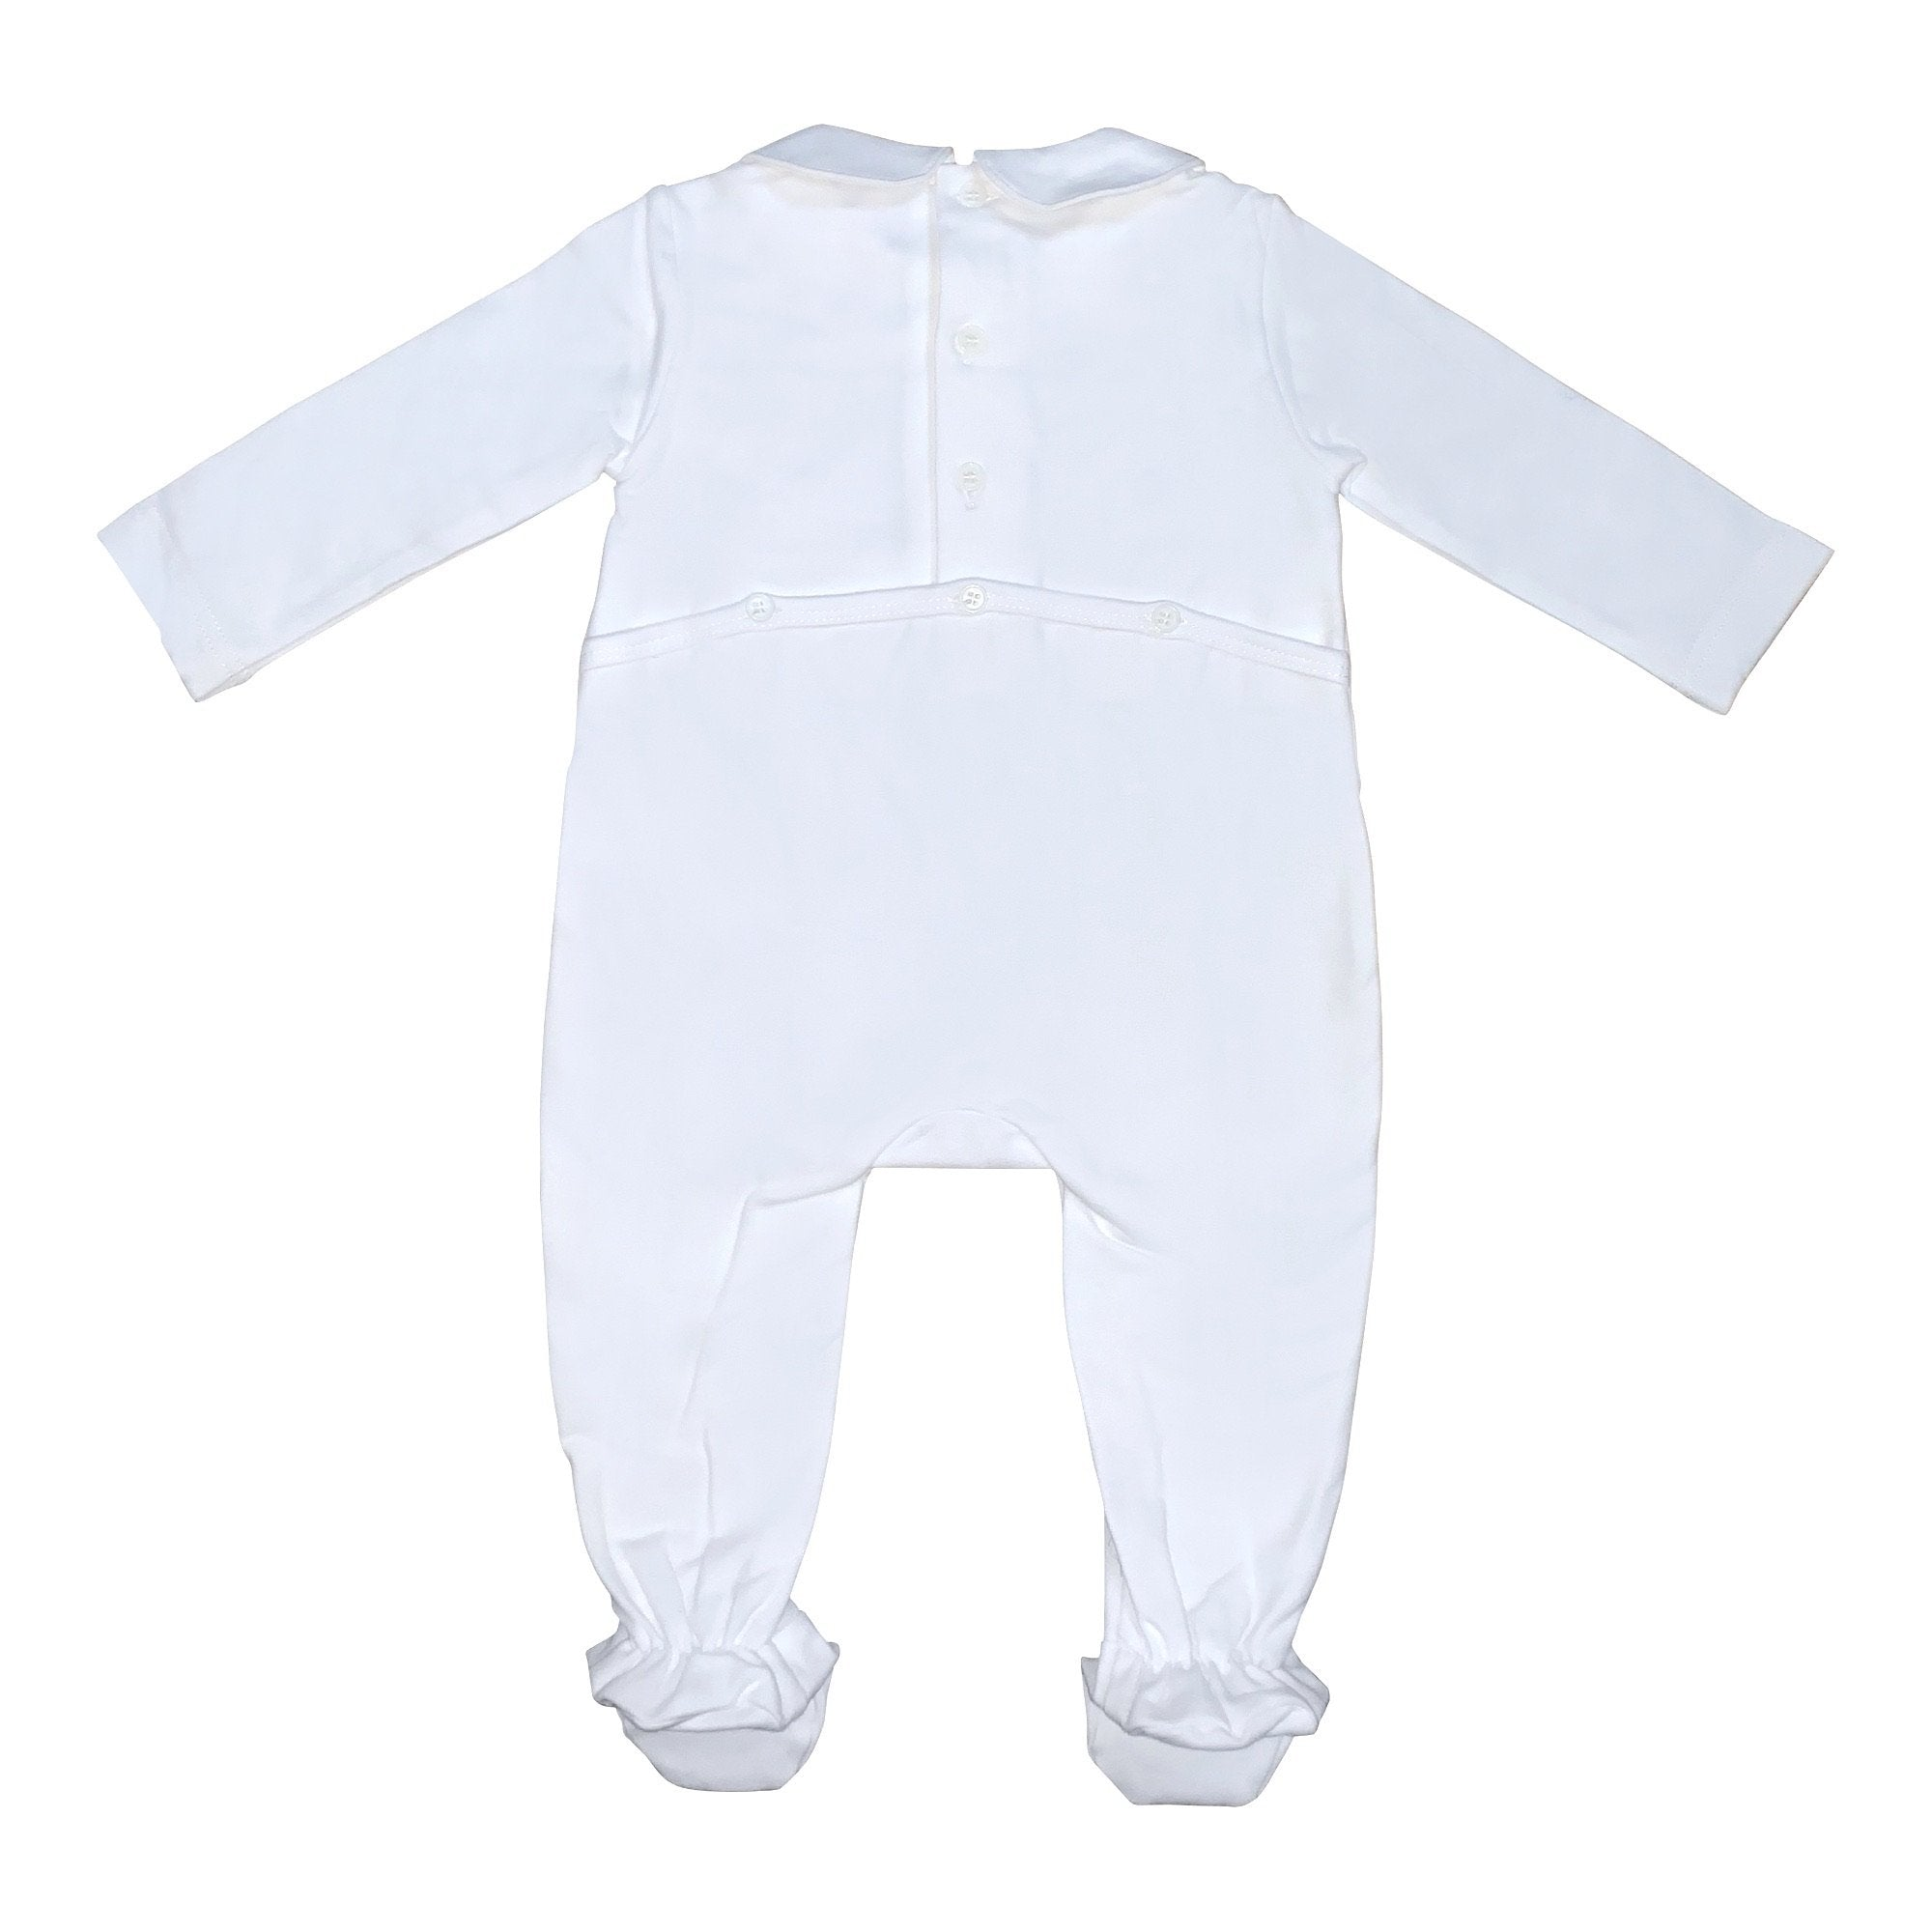 BOYS STRETCH COTTON SMOCKED ROMPER